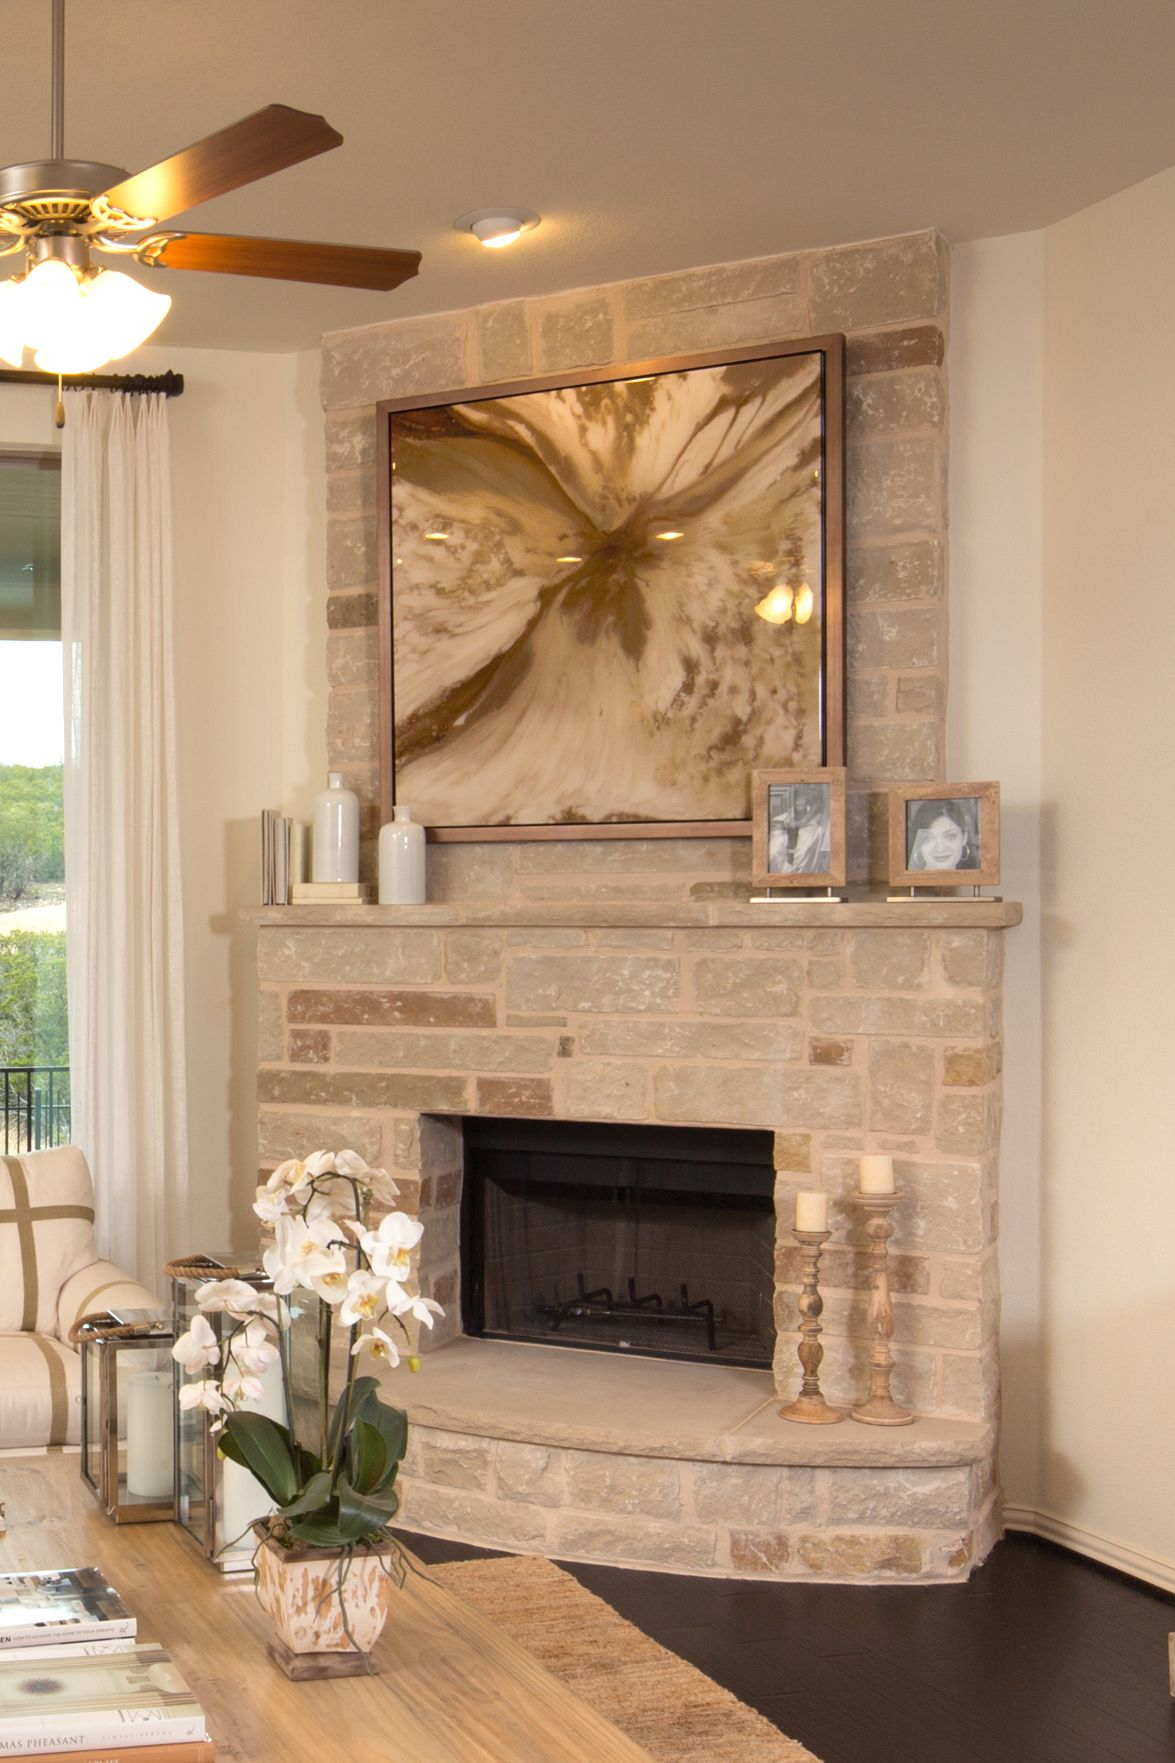 weathered stone creates a fireplace with a feeling of history